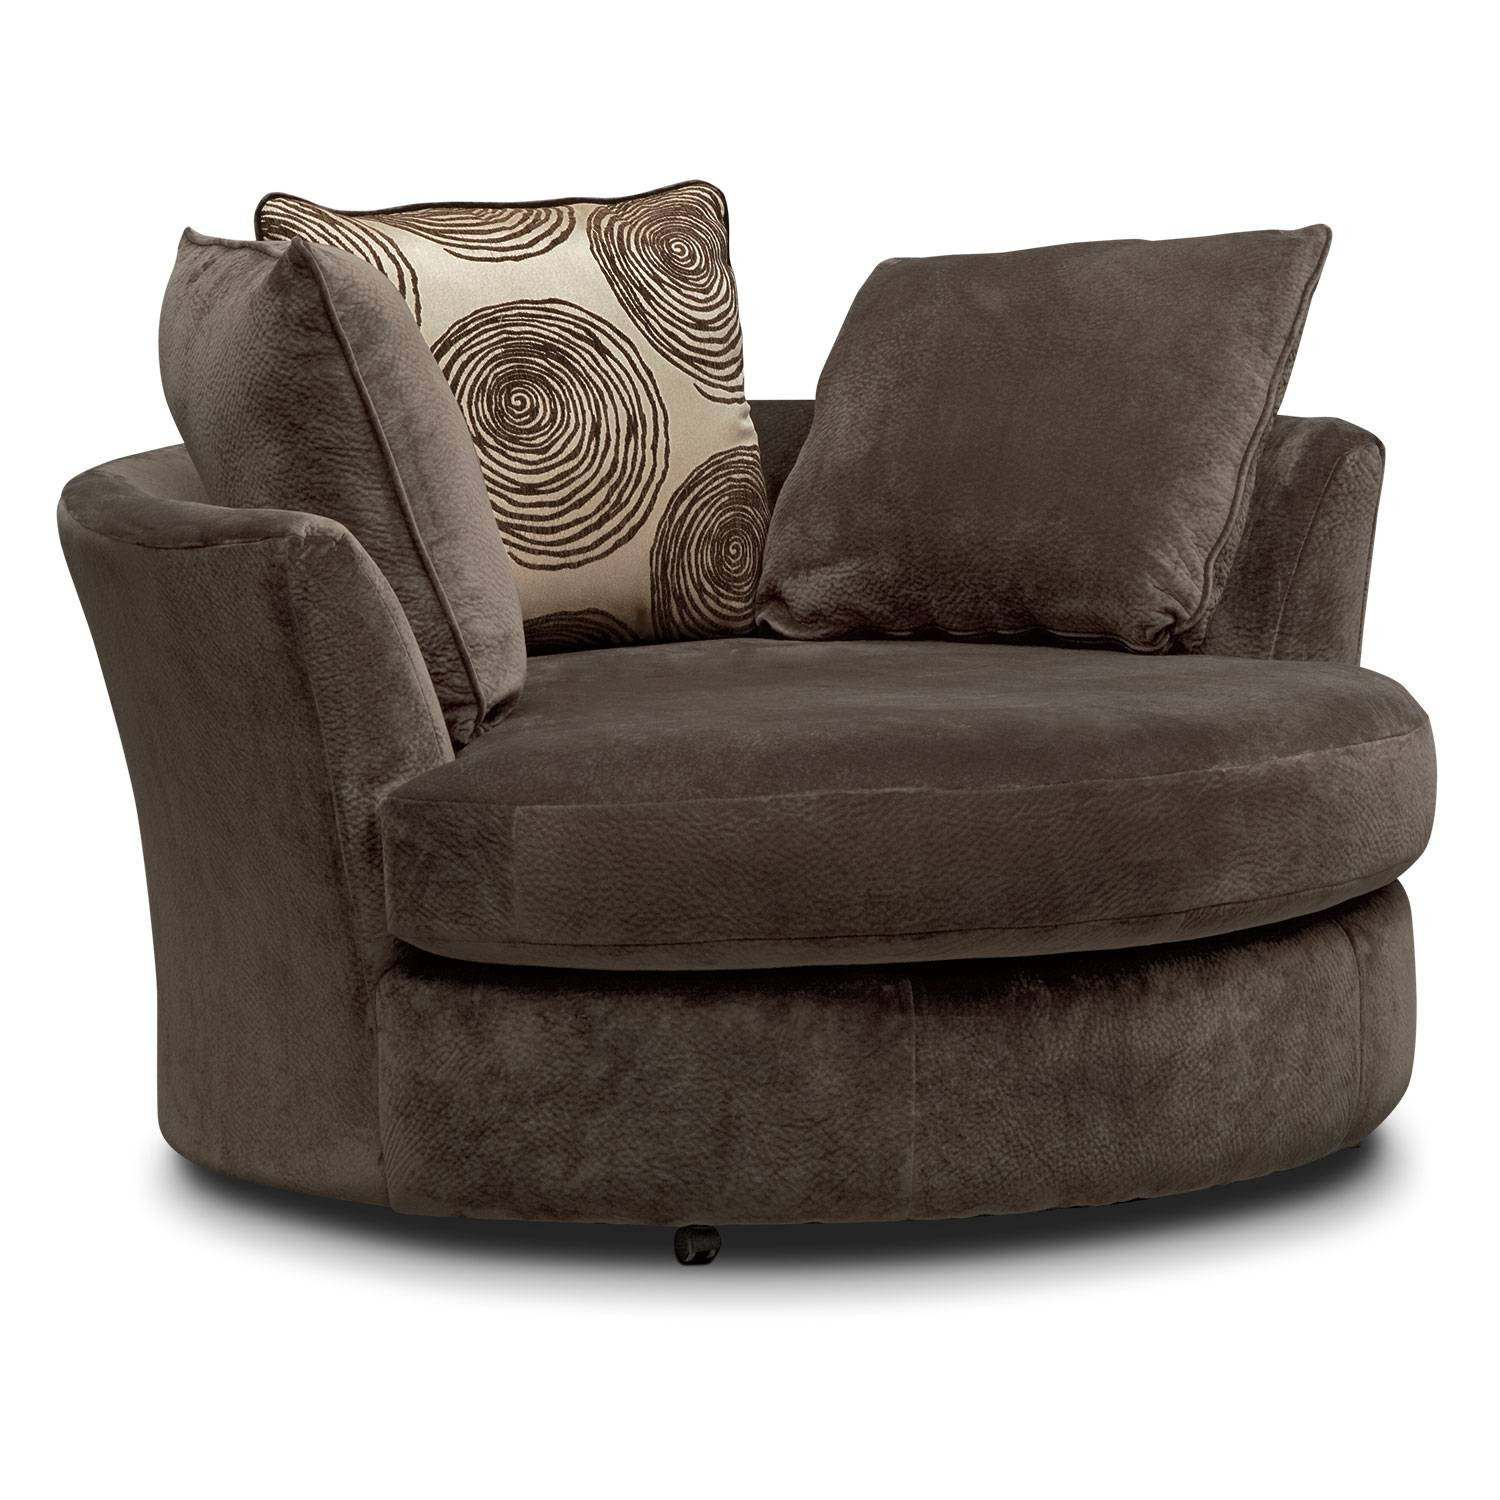 Cordelle Sofa And Swivel Chair Set – Chocolate | Value City Furniture With Sofa And Chair Set (View 14 of 30)